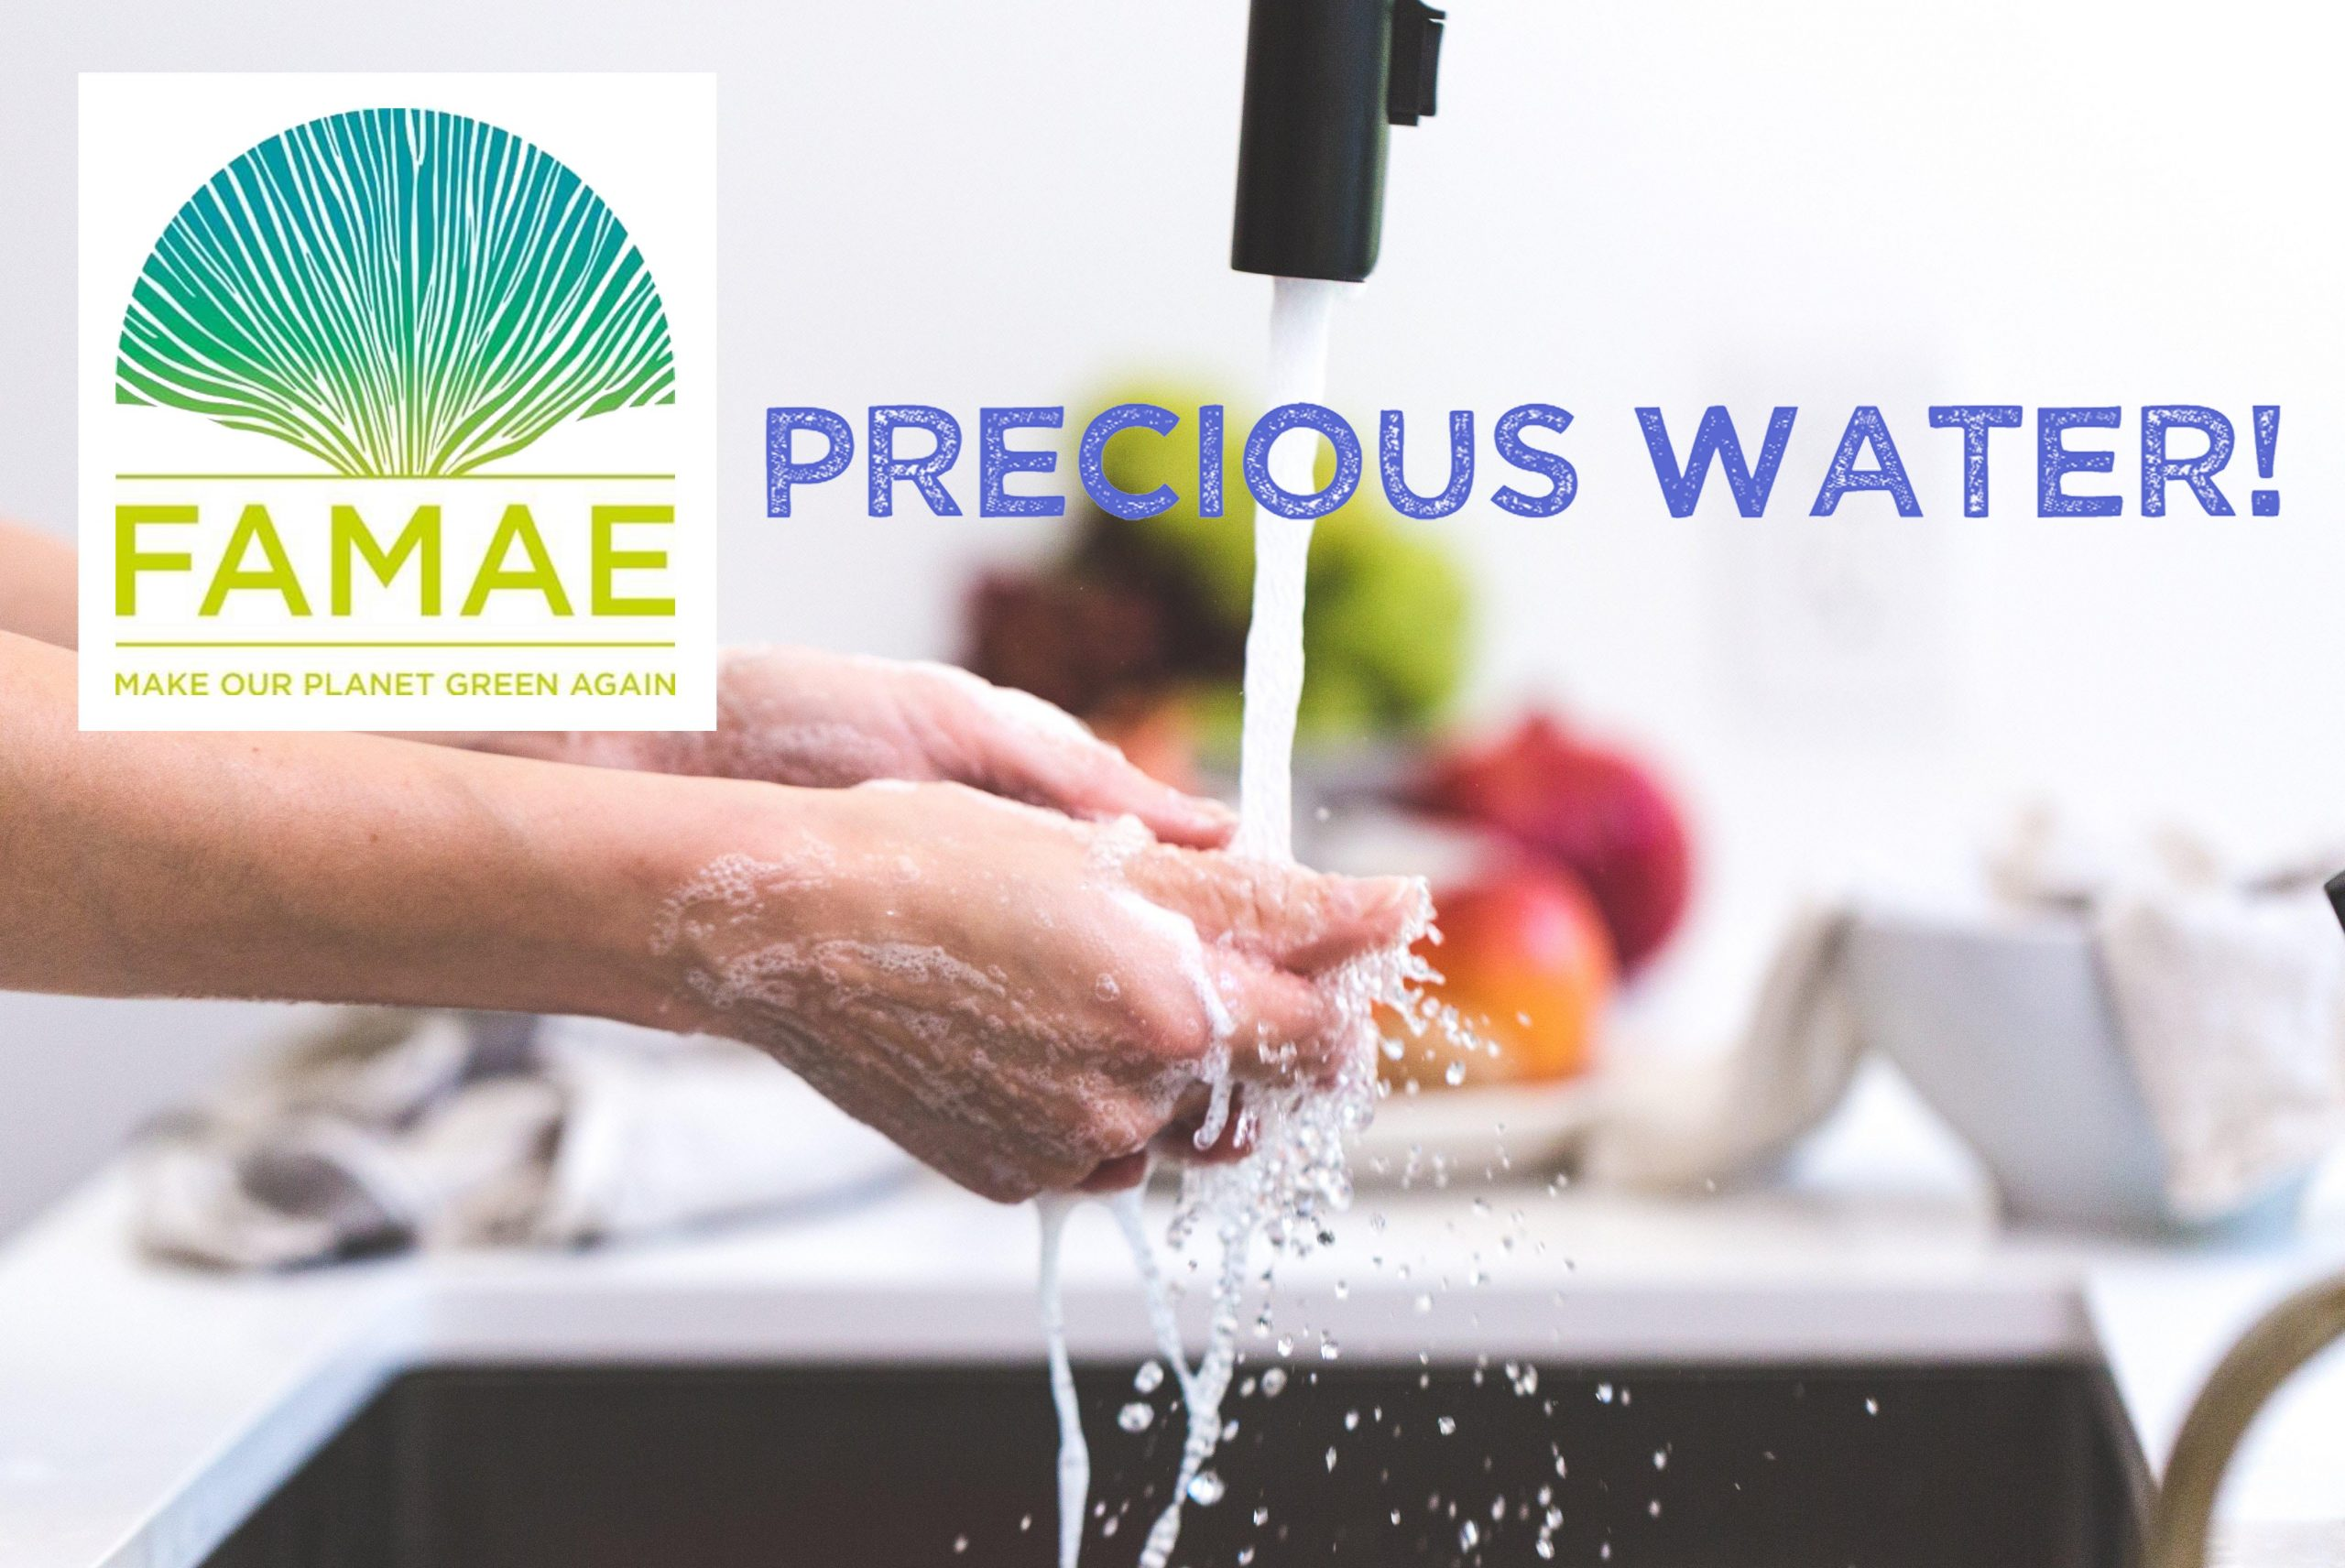 PRECIOUS WATER challenge: Participate to make the planet green again